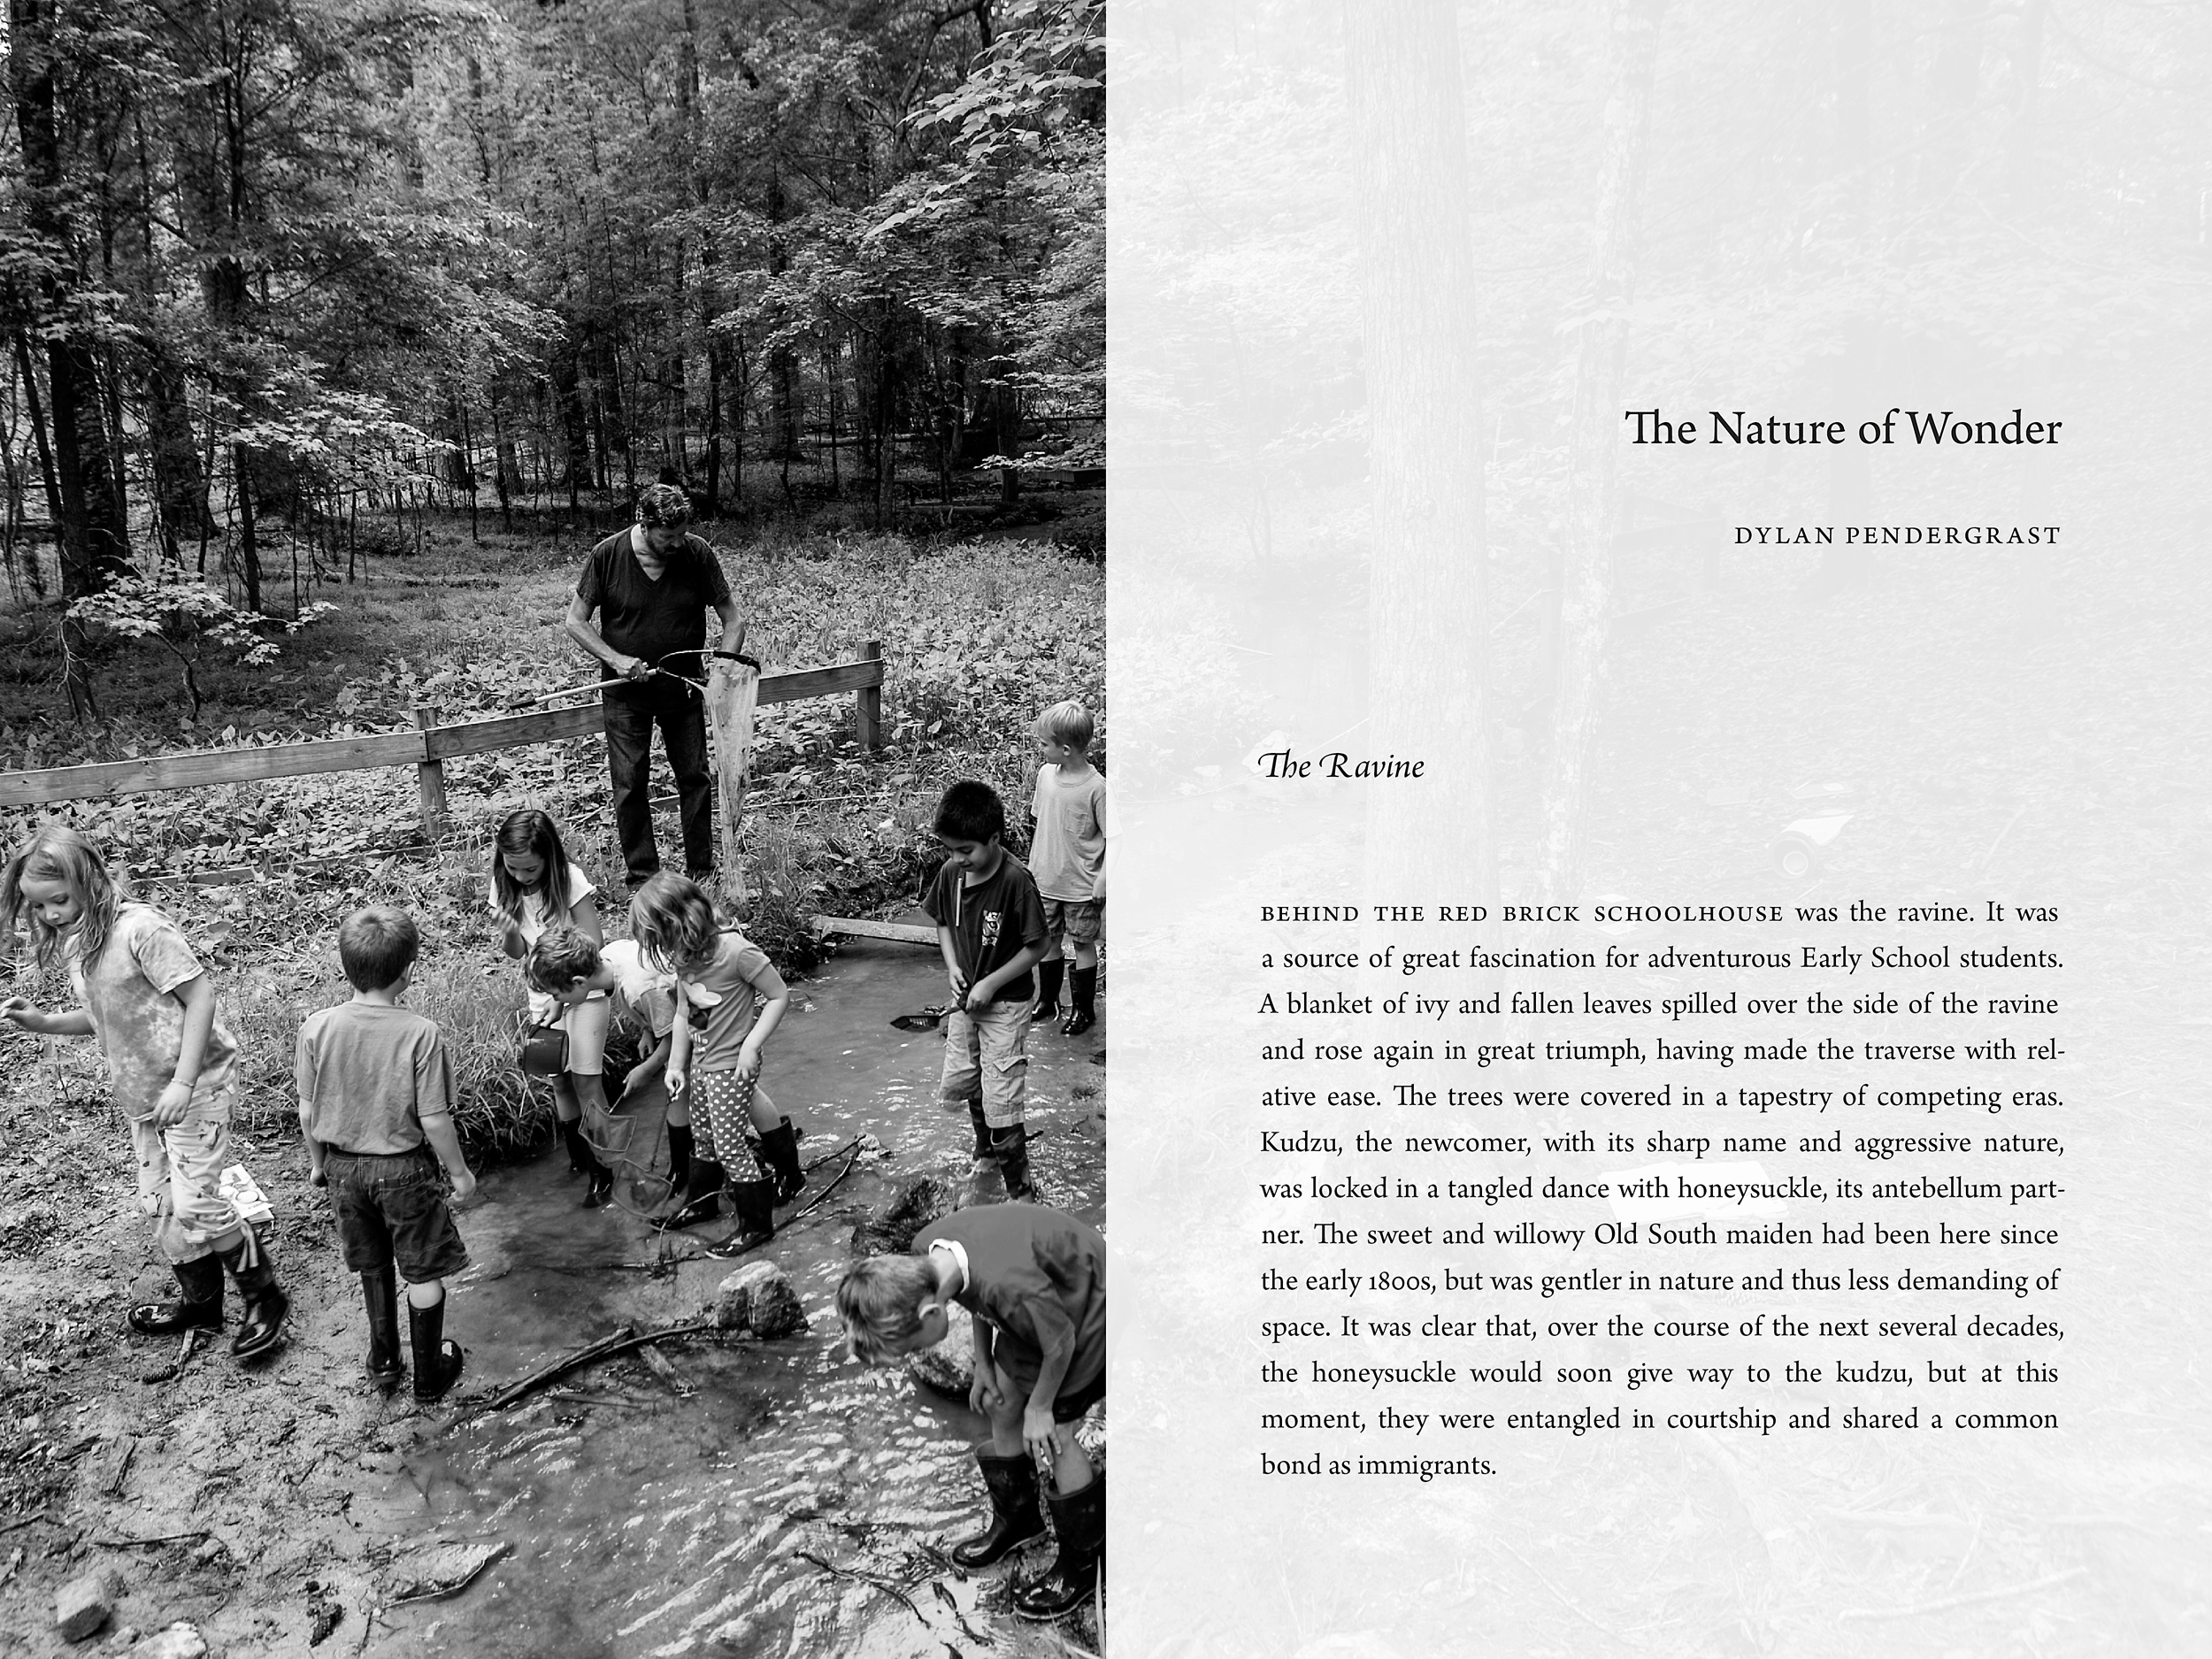 Chapter opening for a book on the history of the Carolina Friends School.